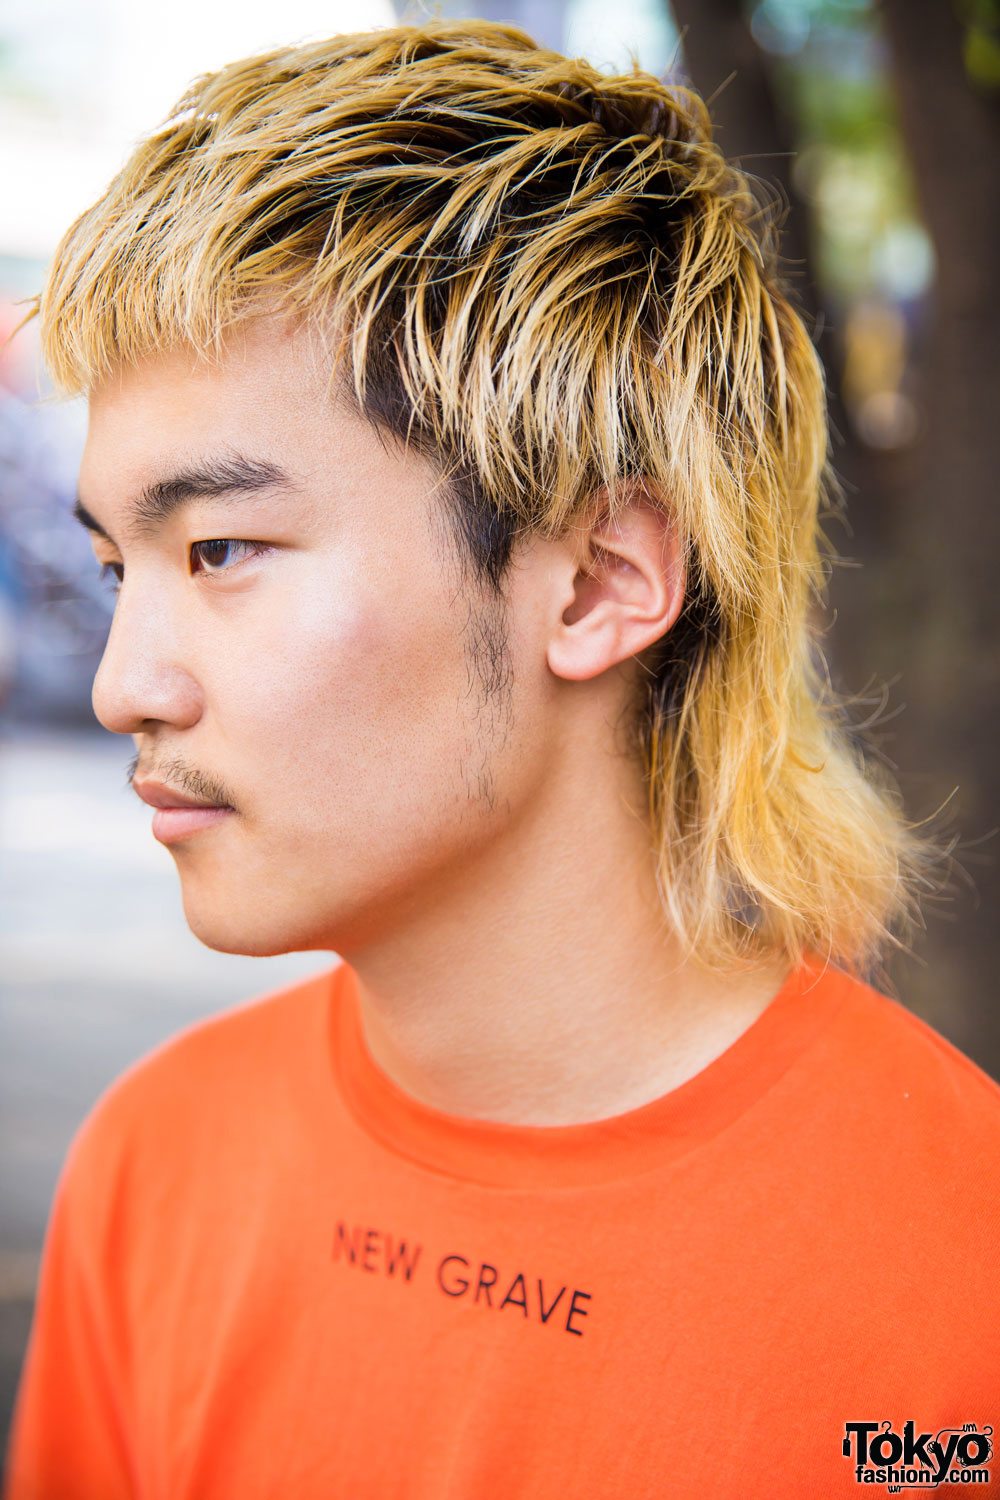 From queer culture to high fashion, the mullet is a protest against Mullet and japan fashion